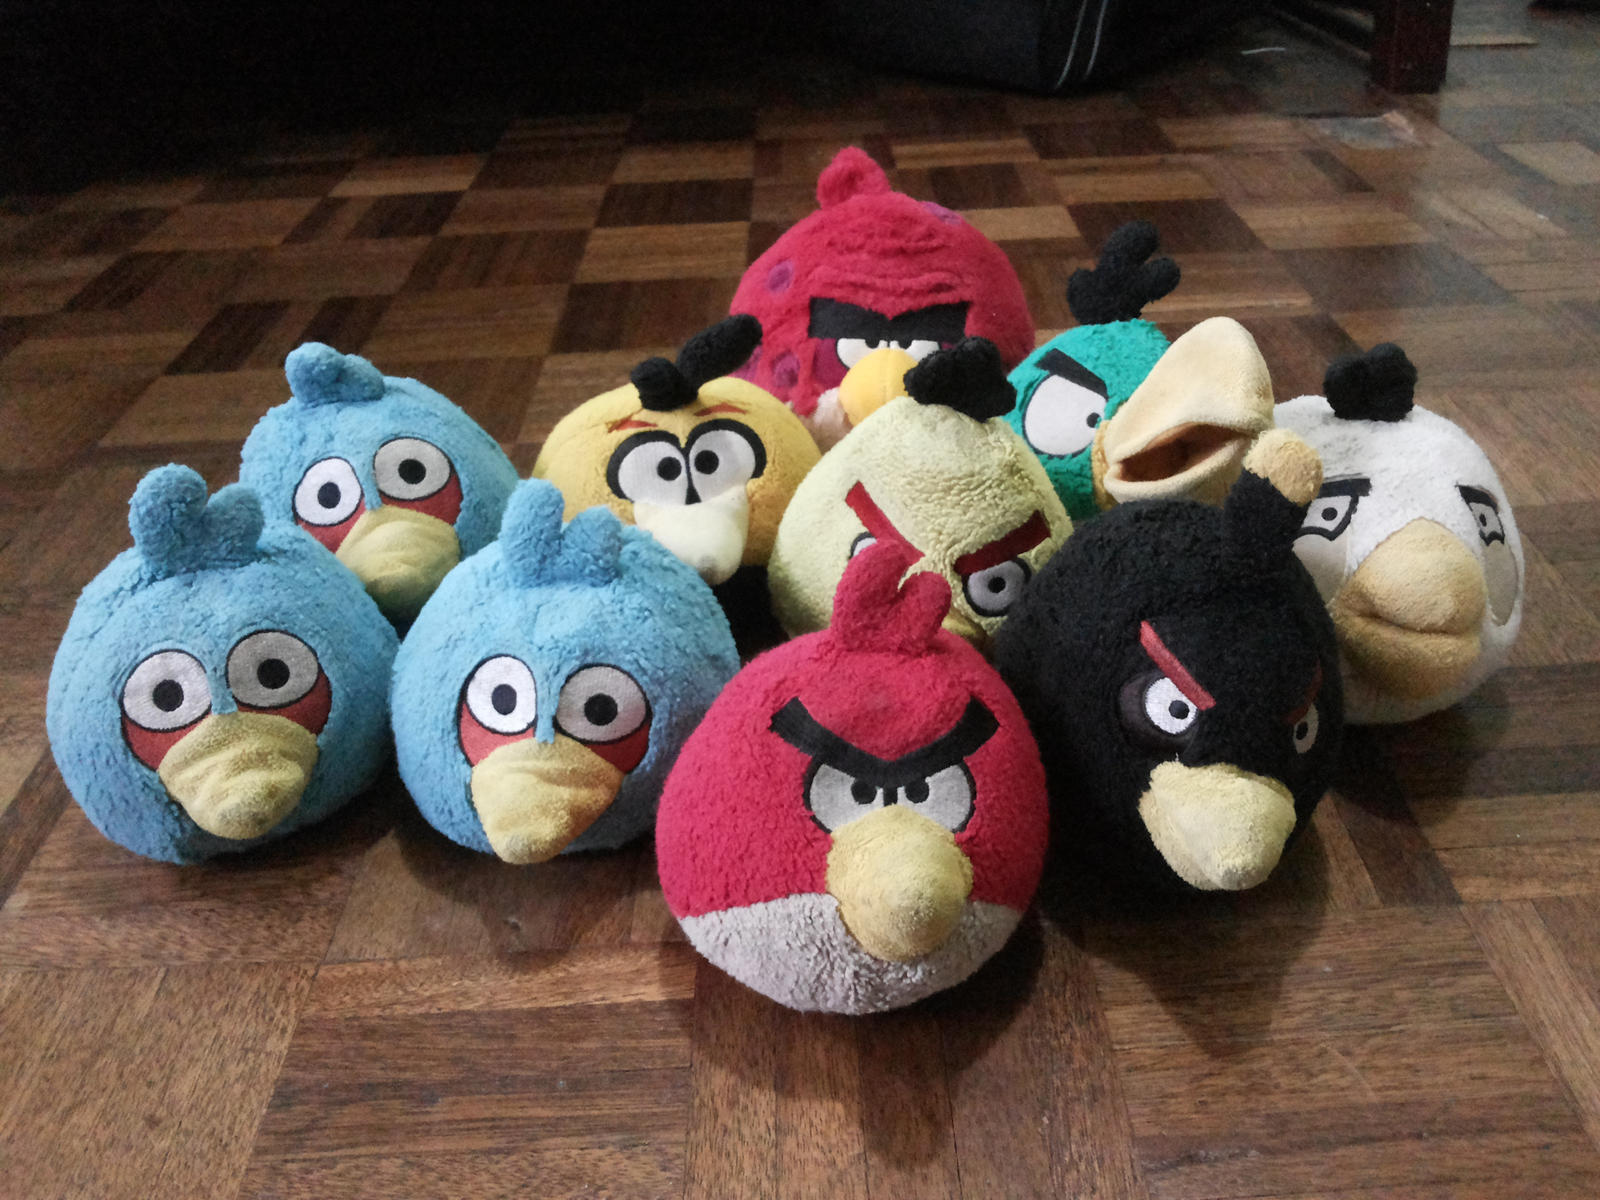 My angry birds plush collection by angrybirdsstuff on deviantart - Mighty eagle plush toy ...